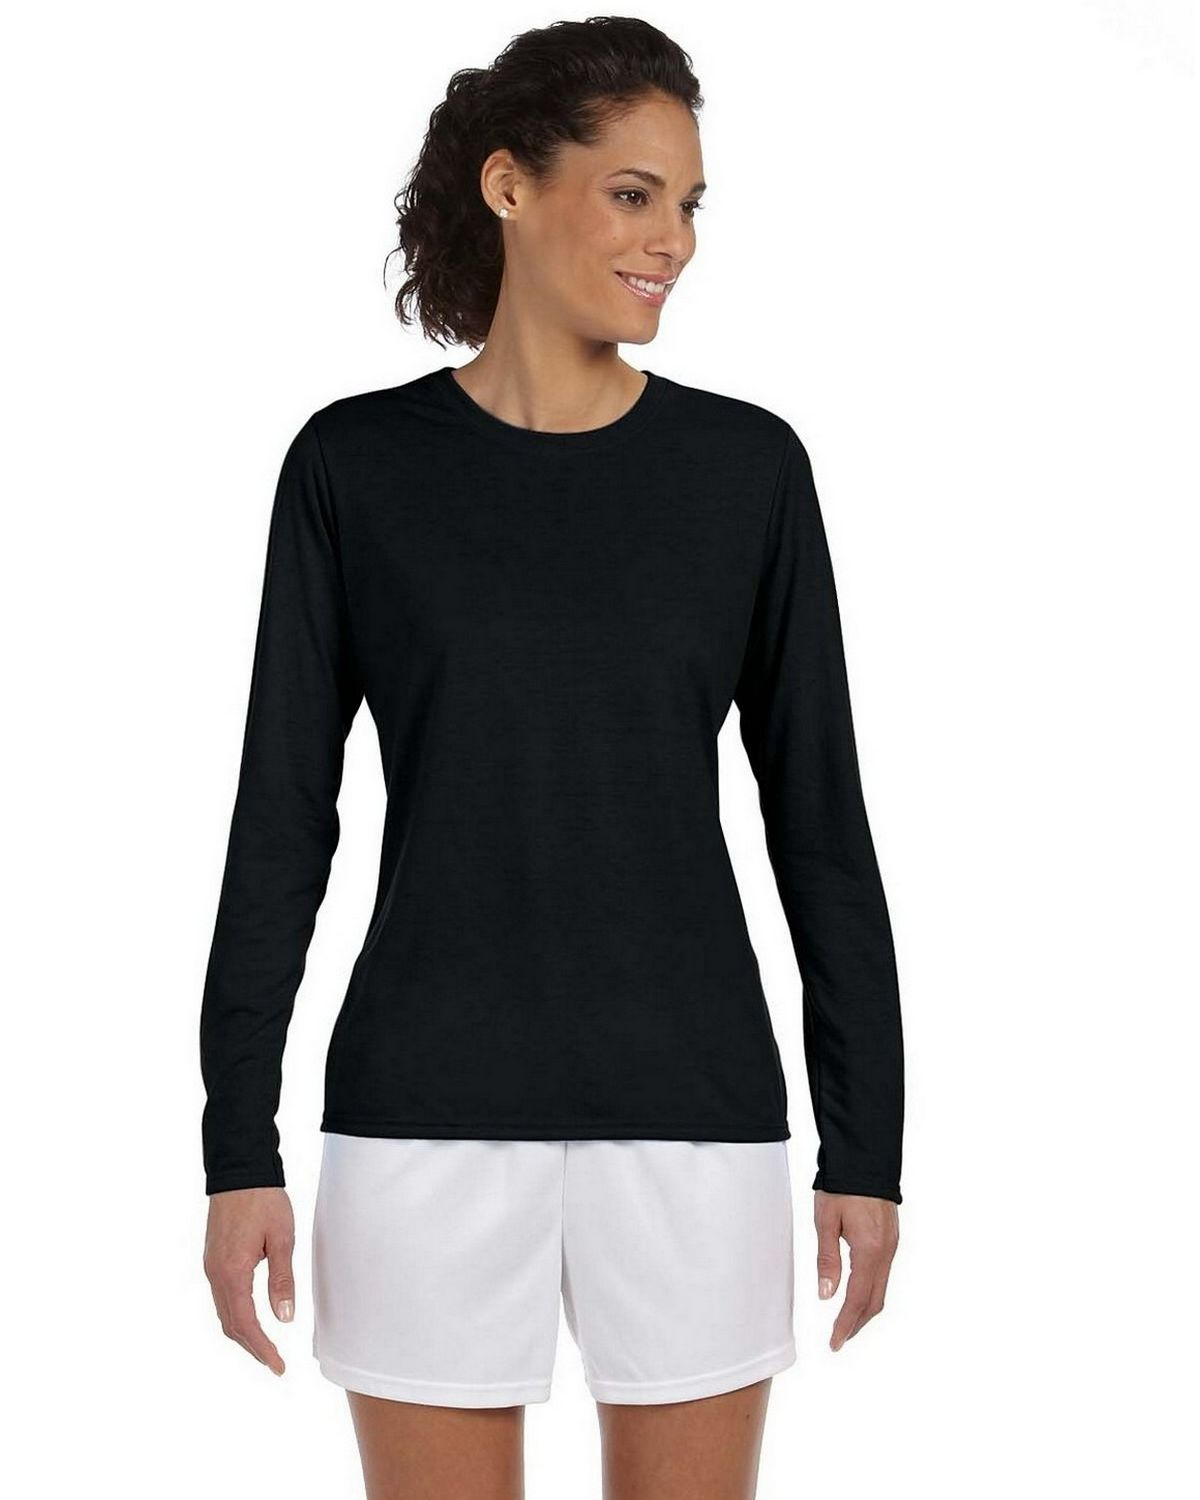 Gildan G424L Performance Long Sleeve T Shirt - Black - M G424L